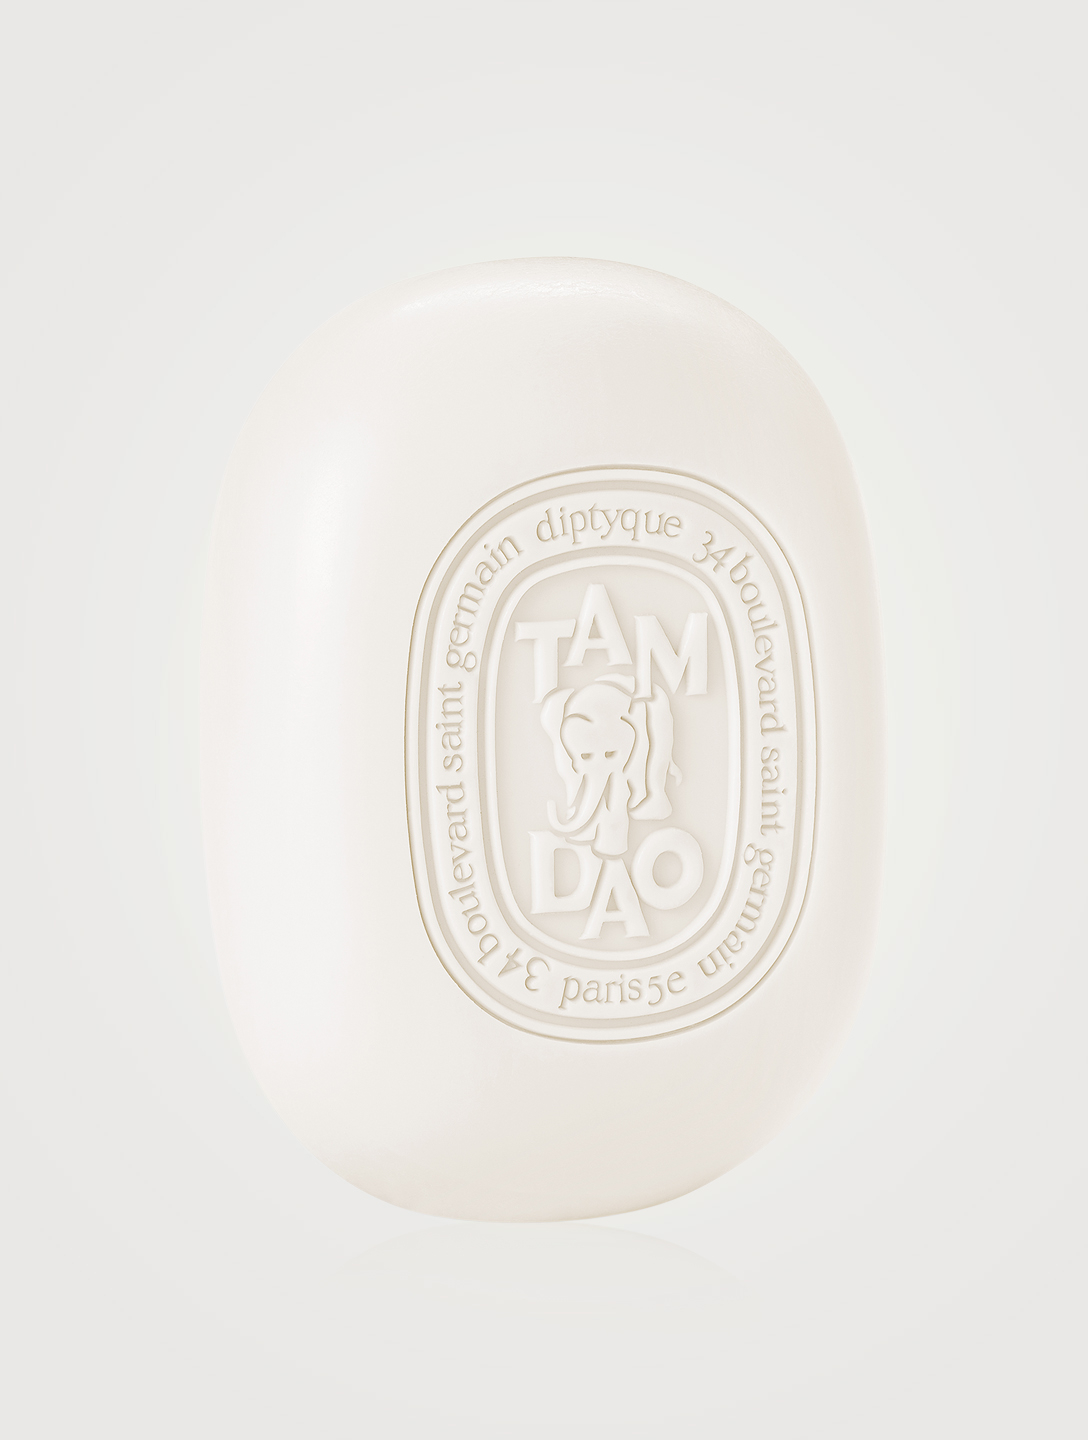 DIPTYQUE Tam Dao Soap Beauty